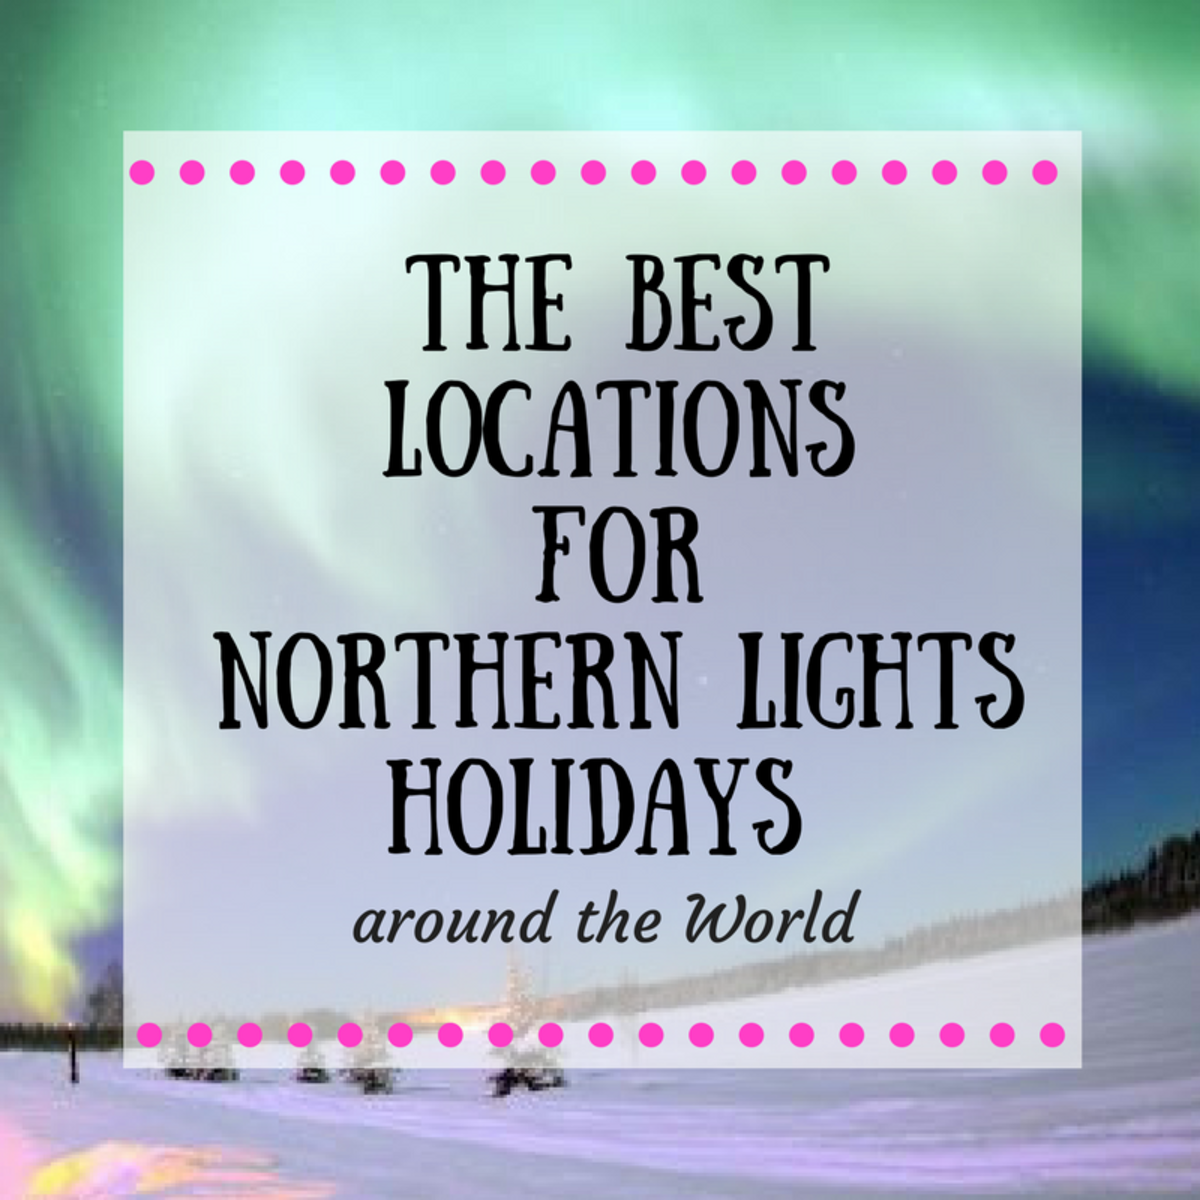 The Best Places for Northern Lights Holidays Around the World